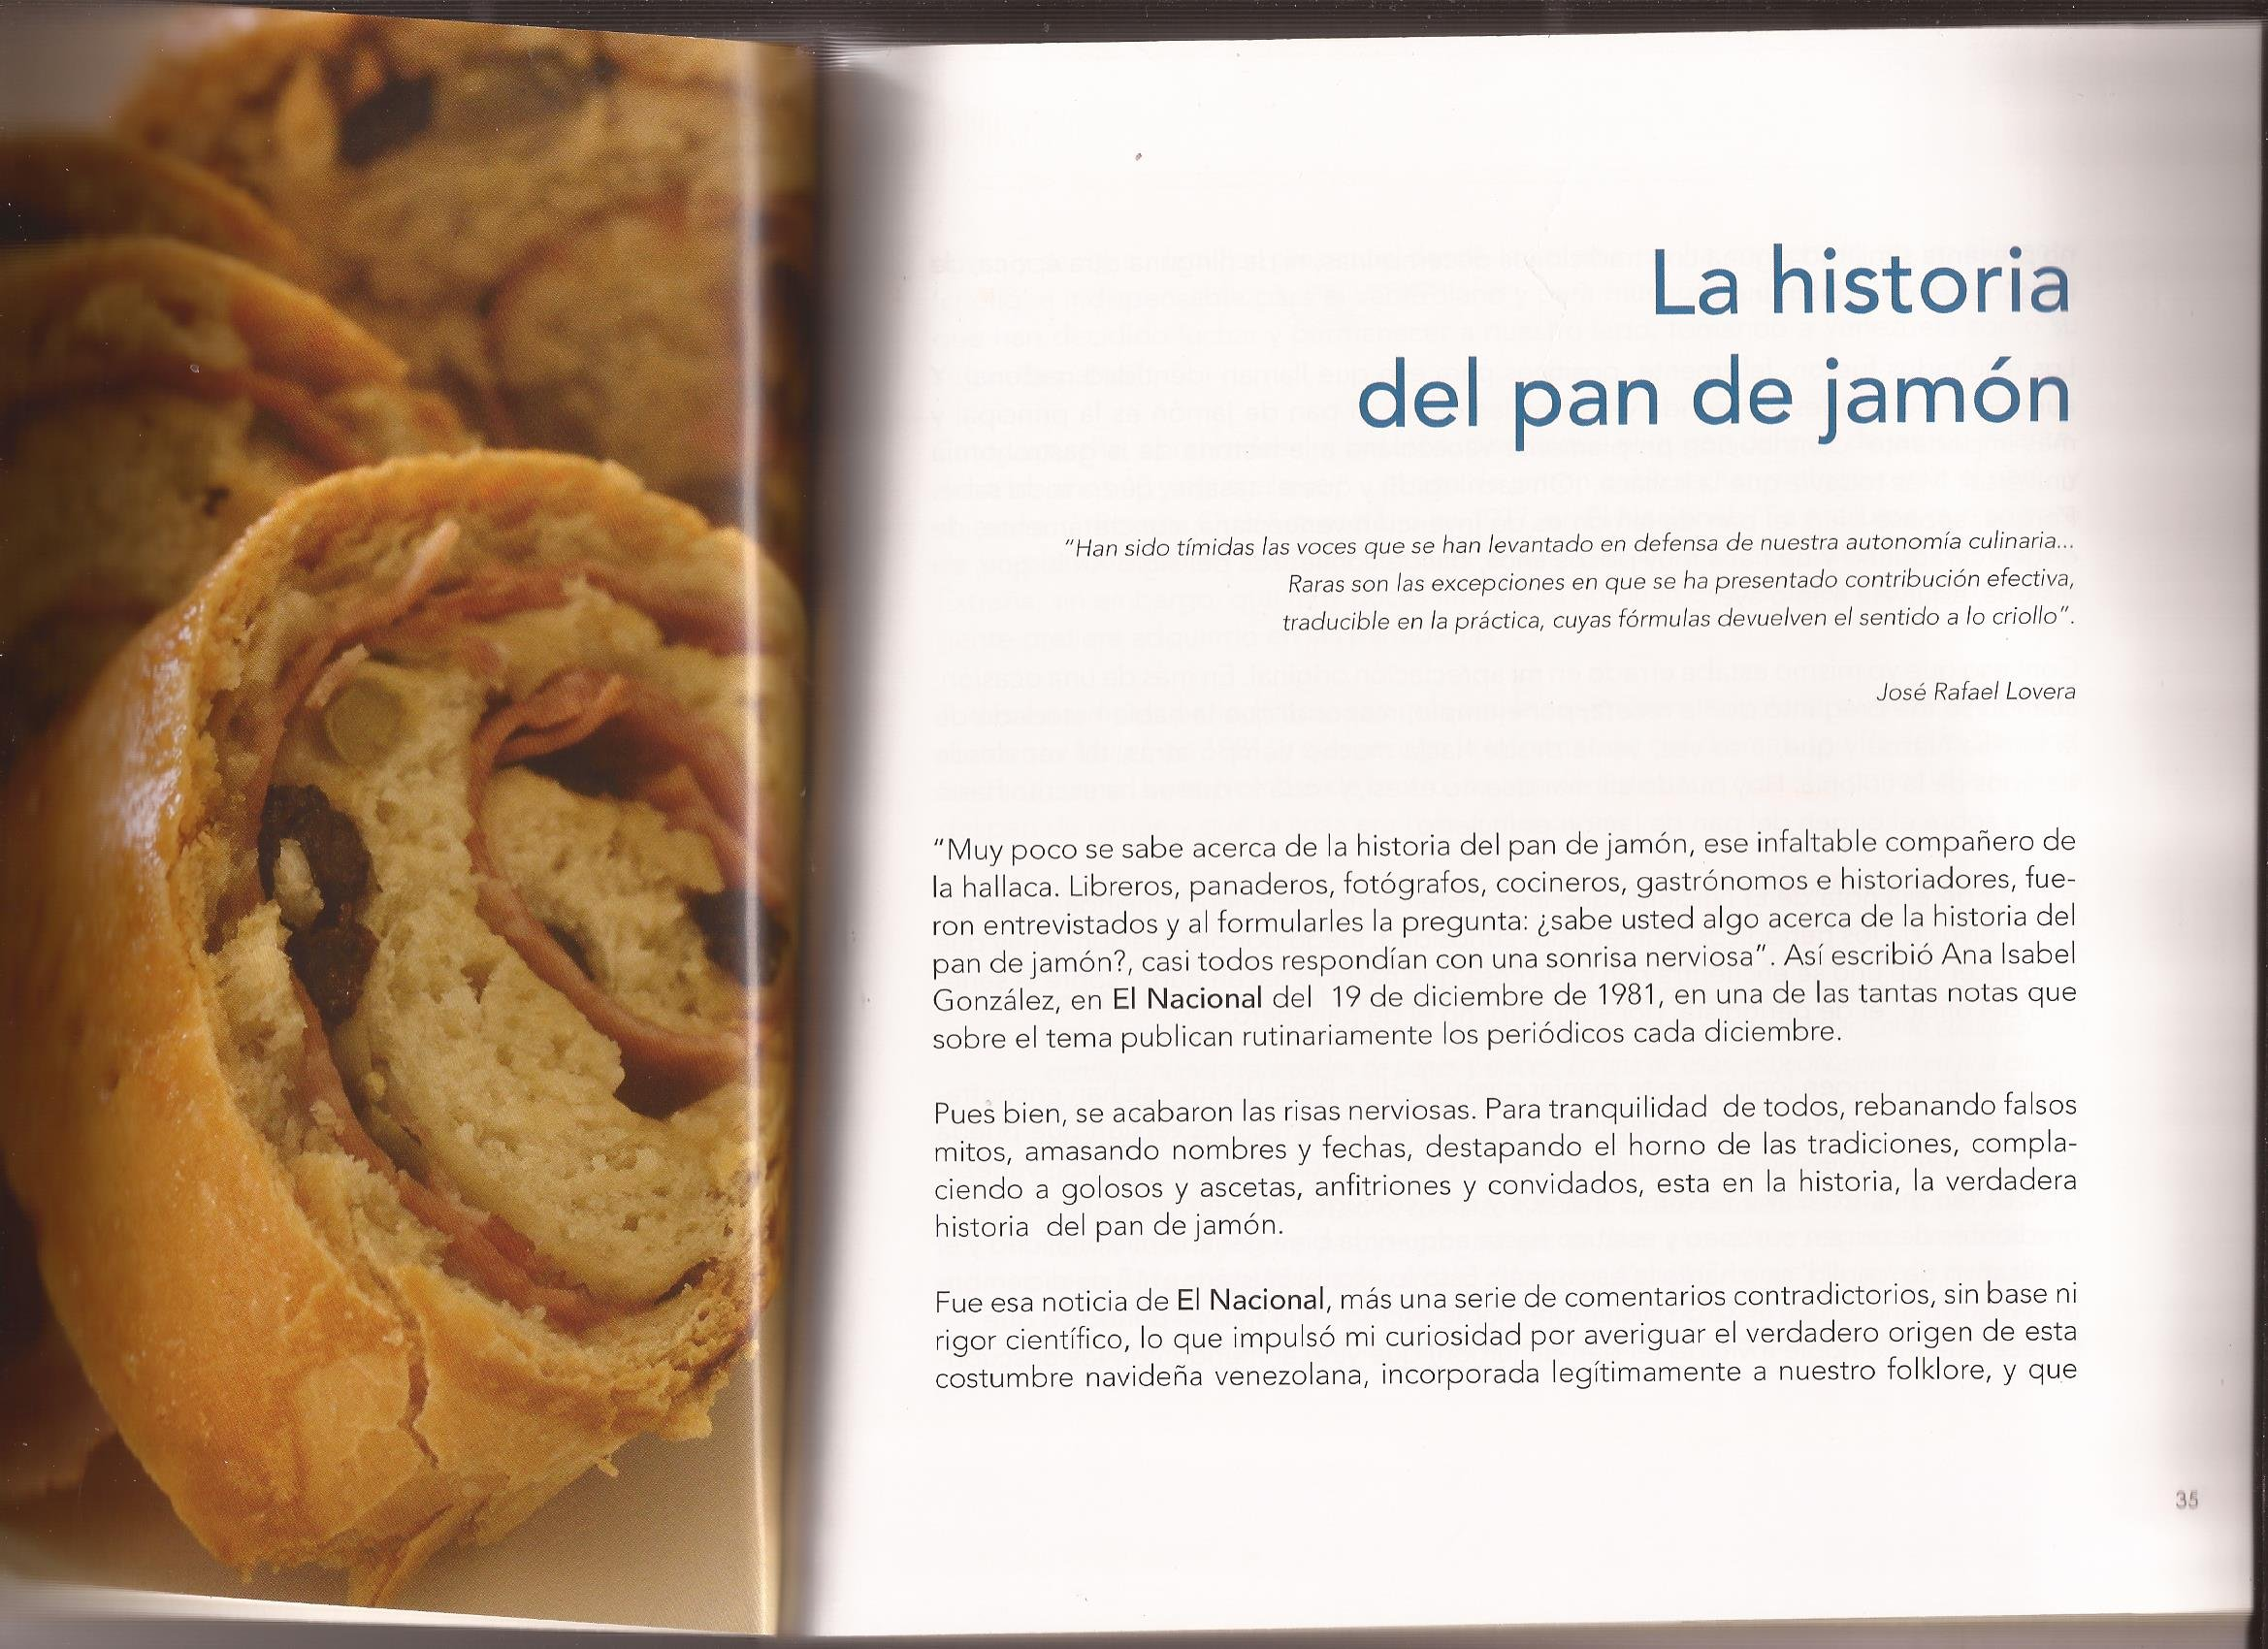 El Nuevo Libro Del Pan De Jamon: Miro Popic: 9789803887469: Amazon.com: Books